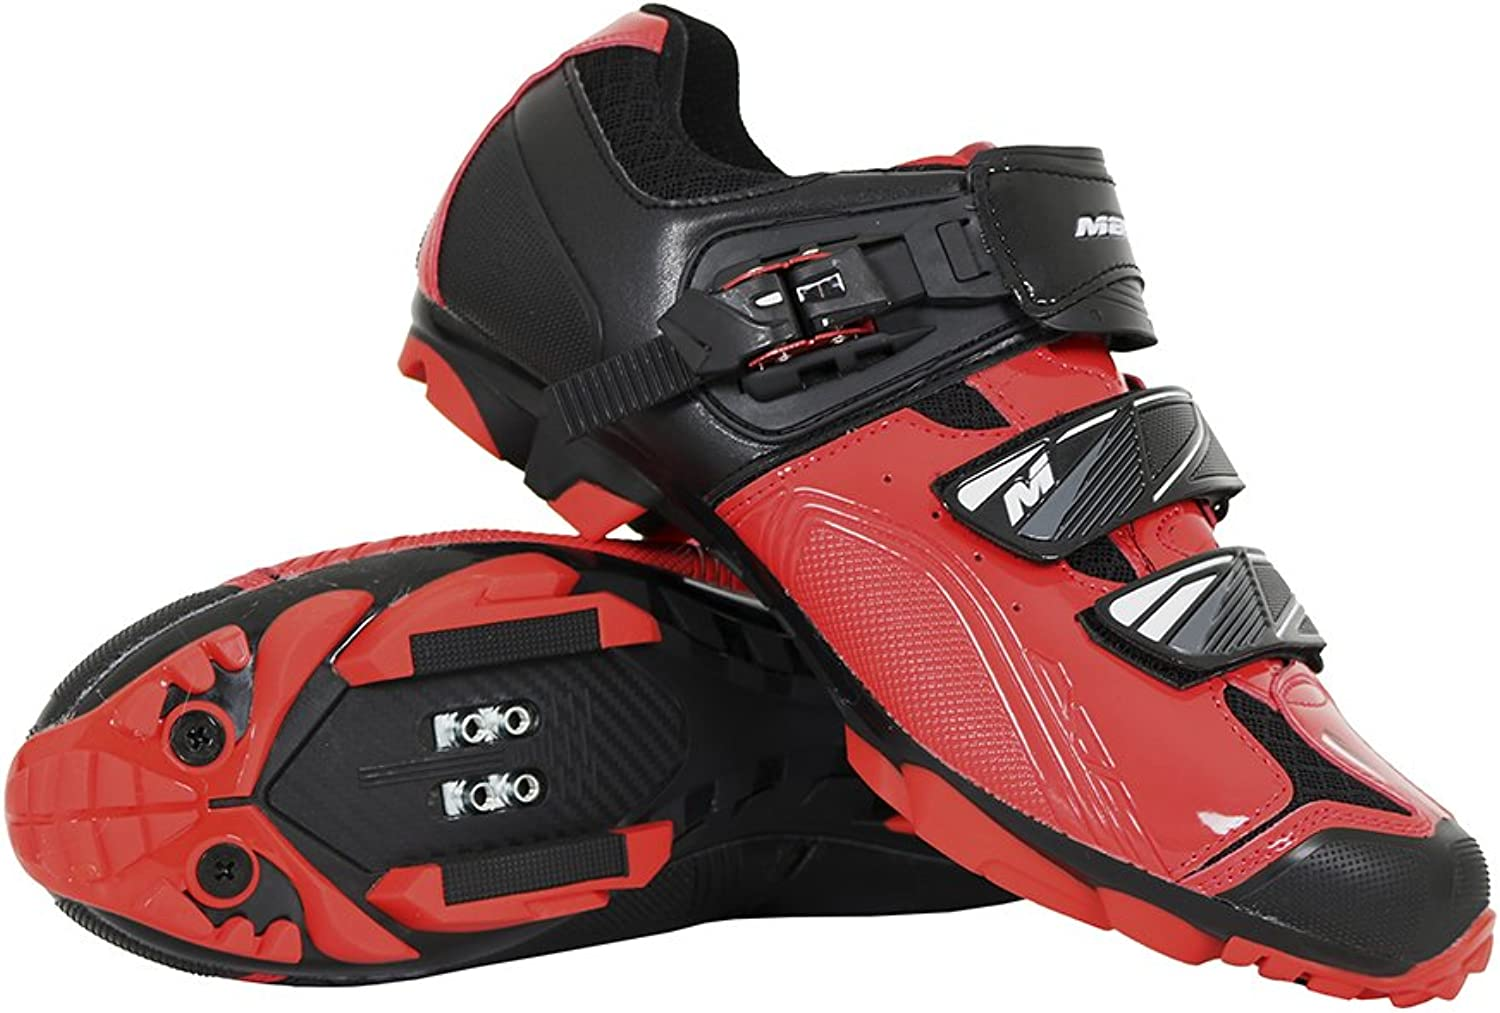 Massi Unisex Adults' Zapatillas Ctra. Arion Dual 2.0 Mountain Biking shoes, Red (Red, Red), 6 UK